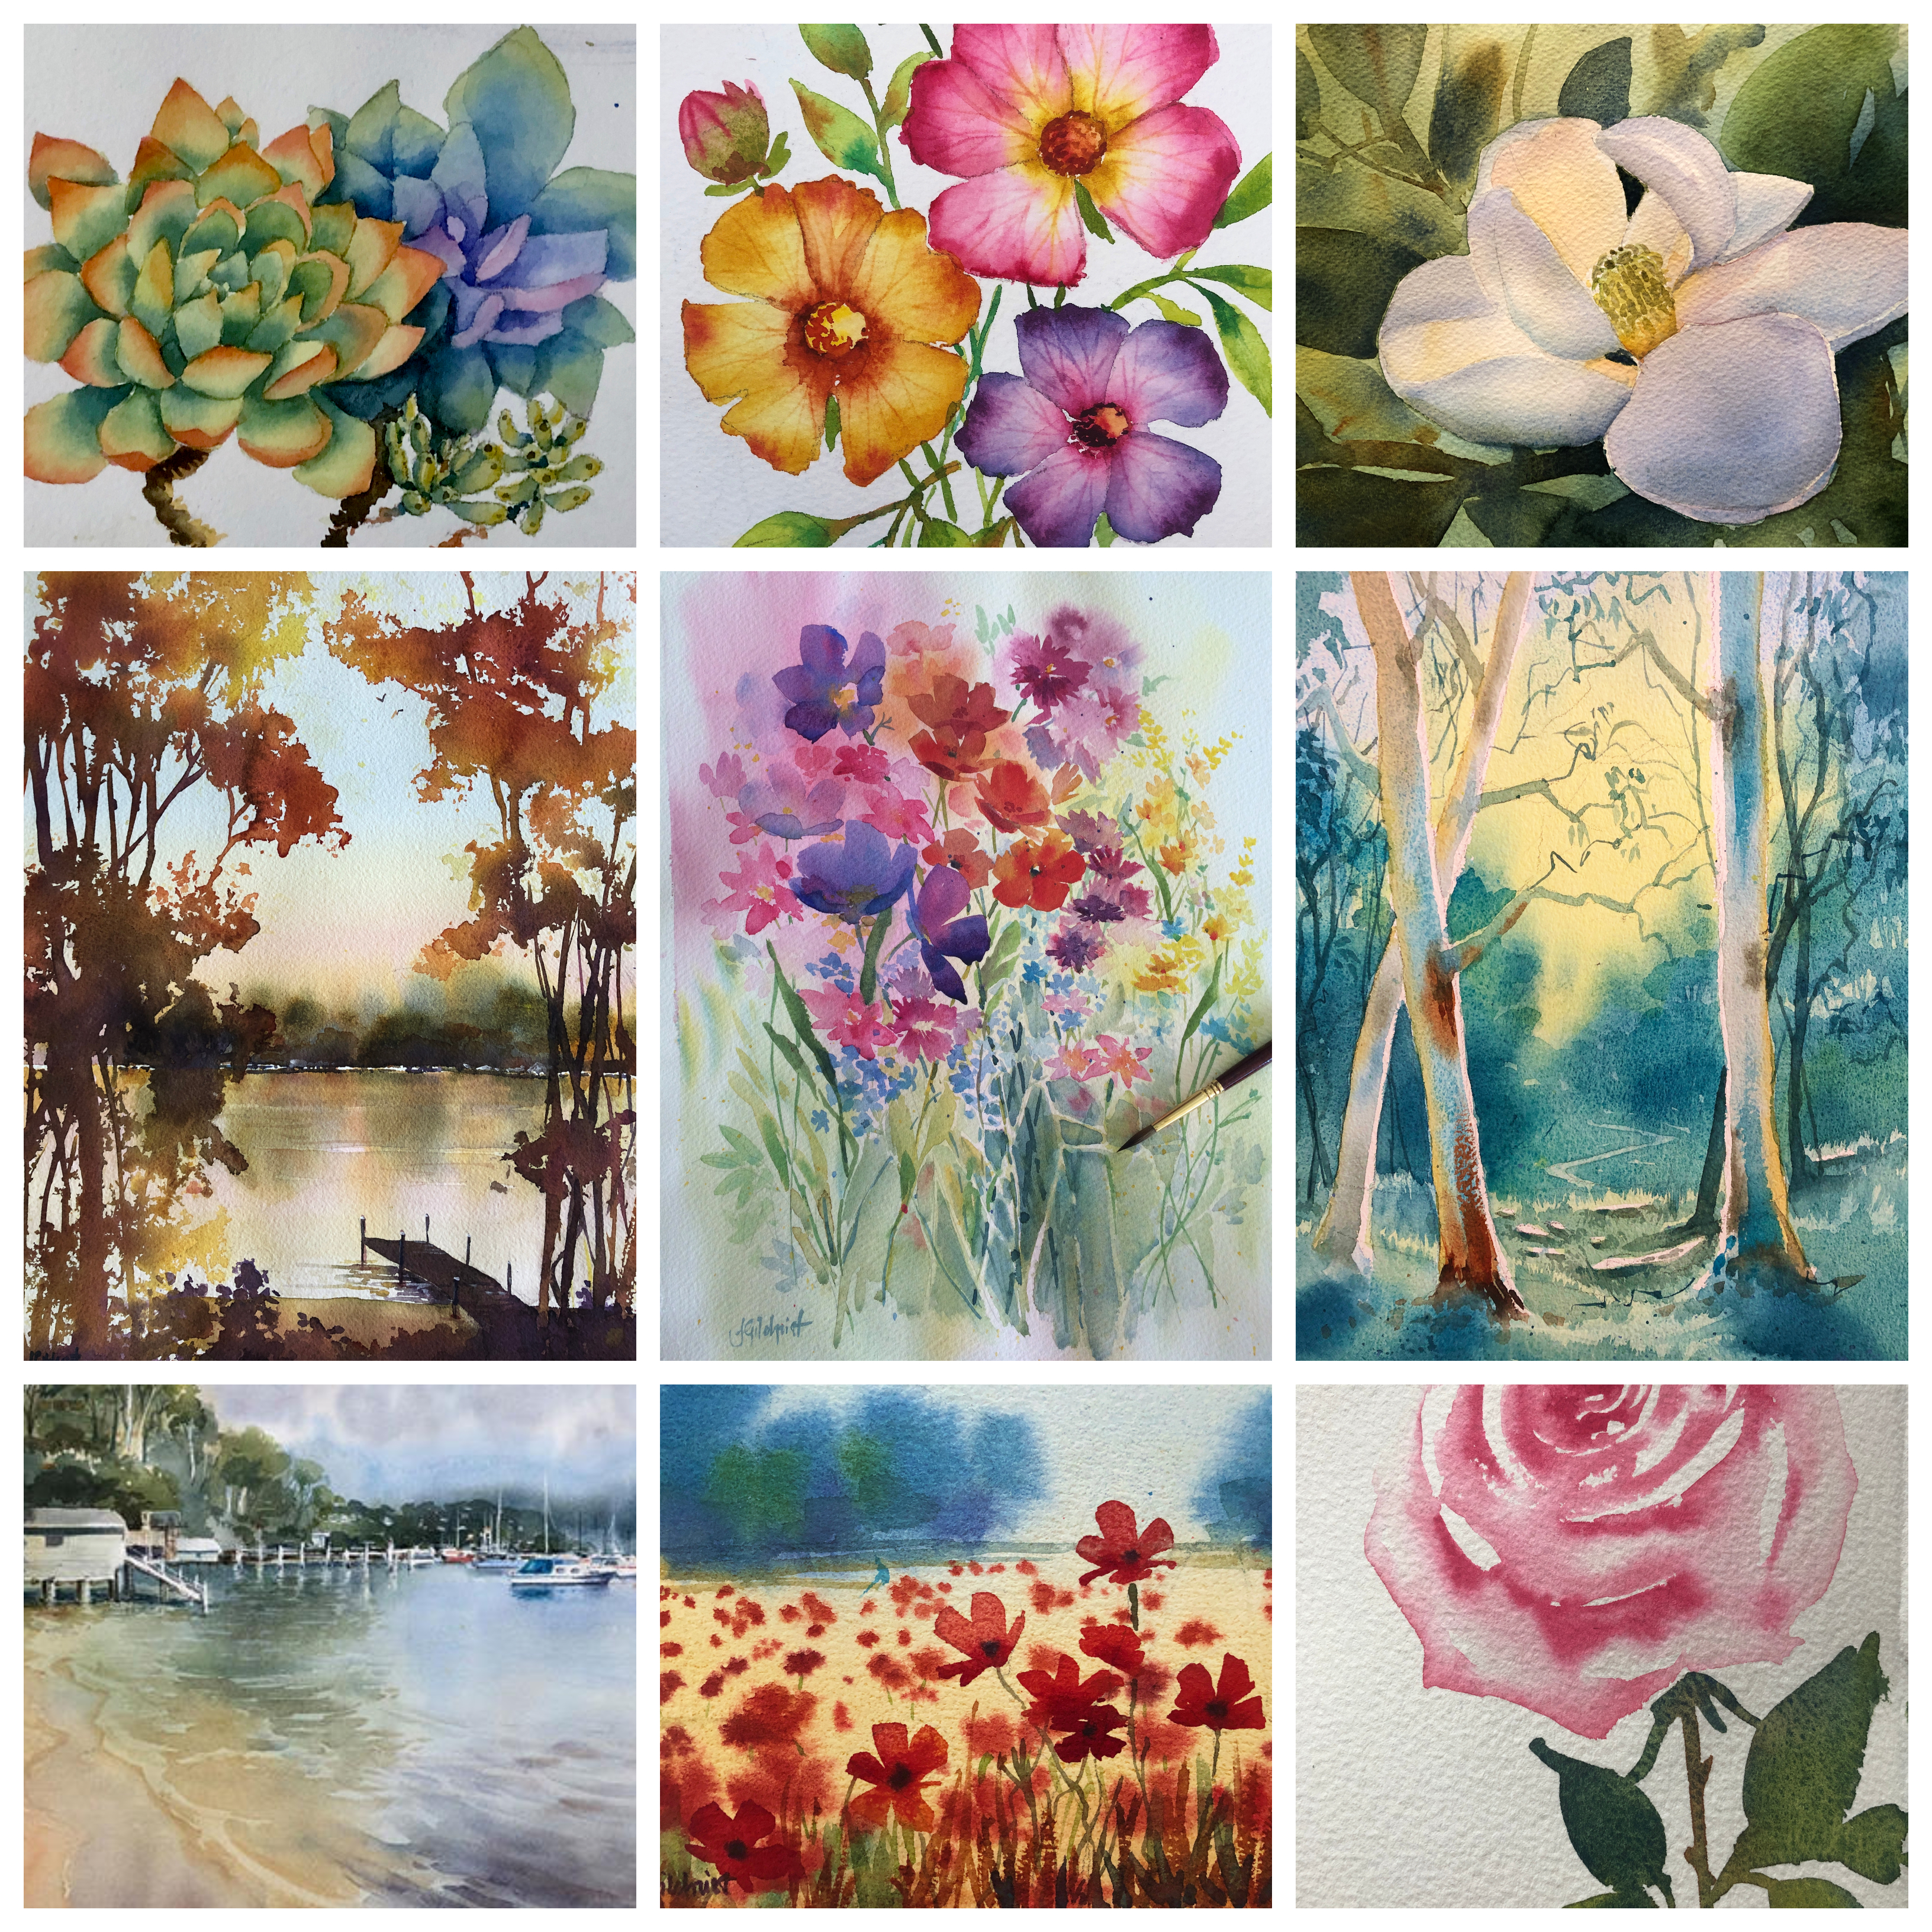 WAtercolour workshops for intermediate painters, online and on demand